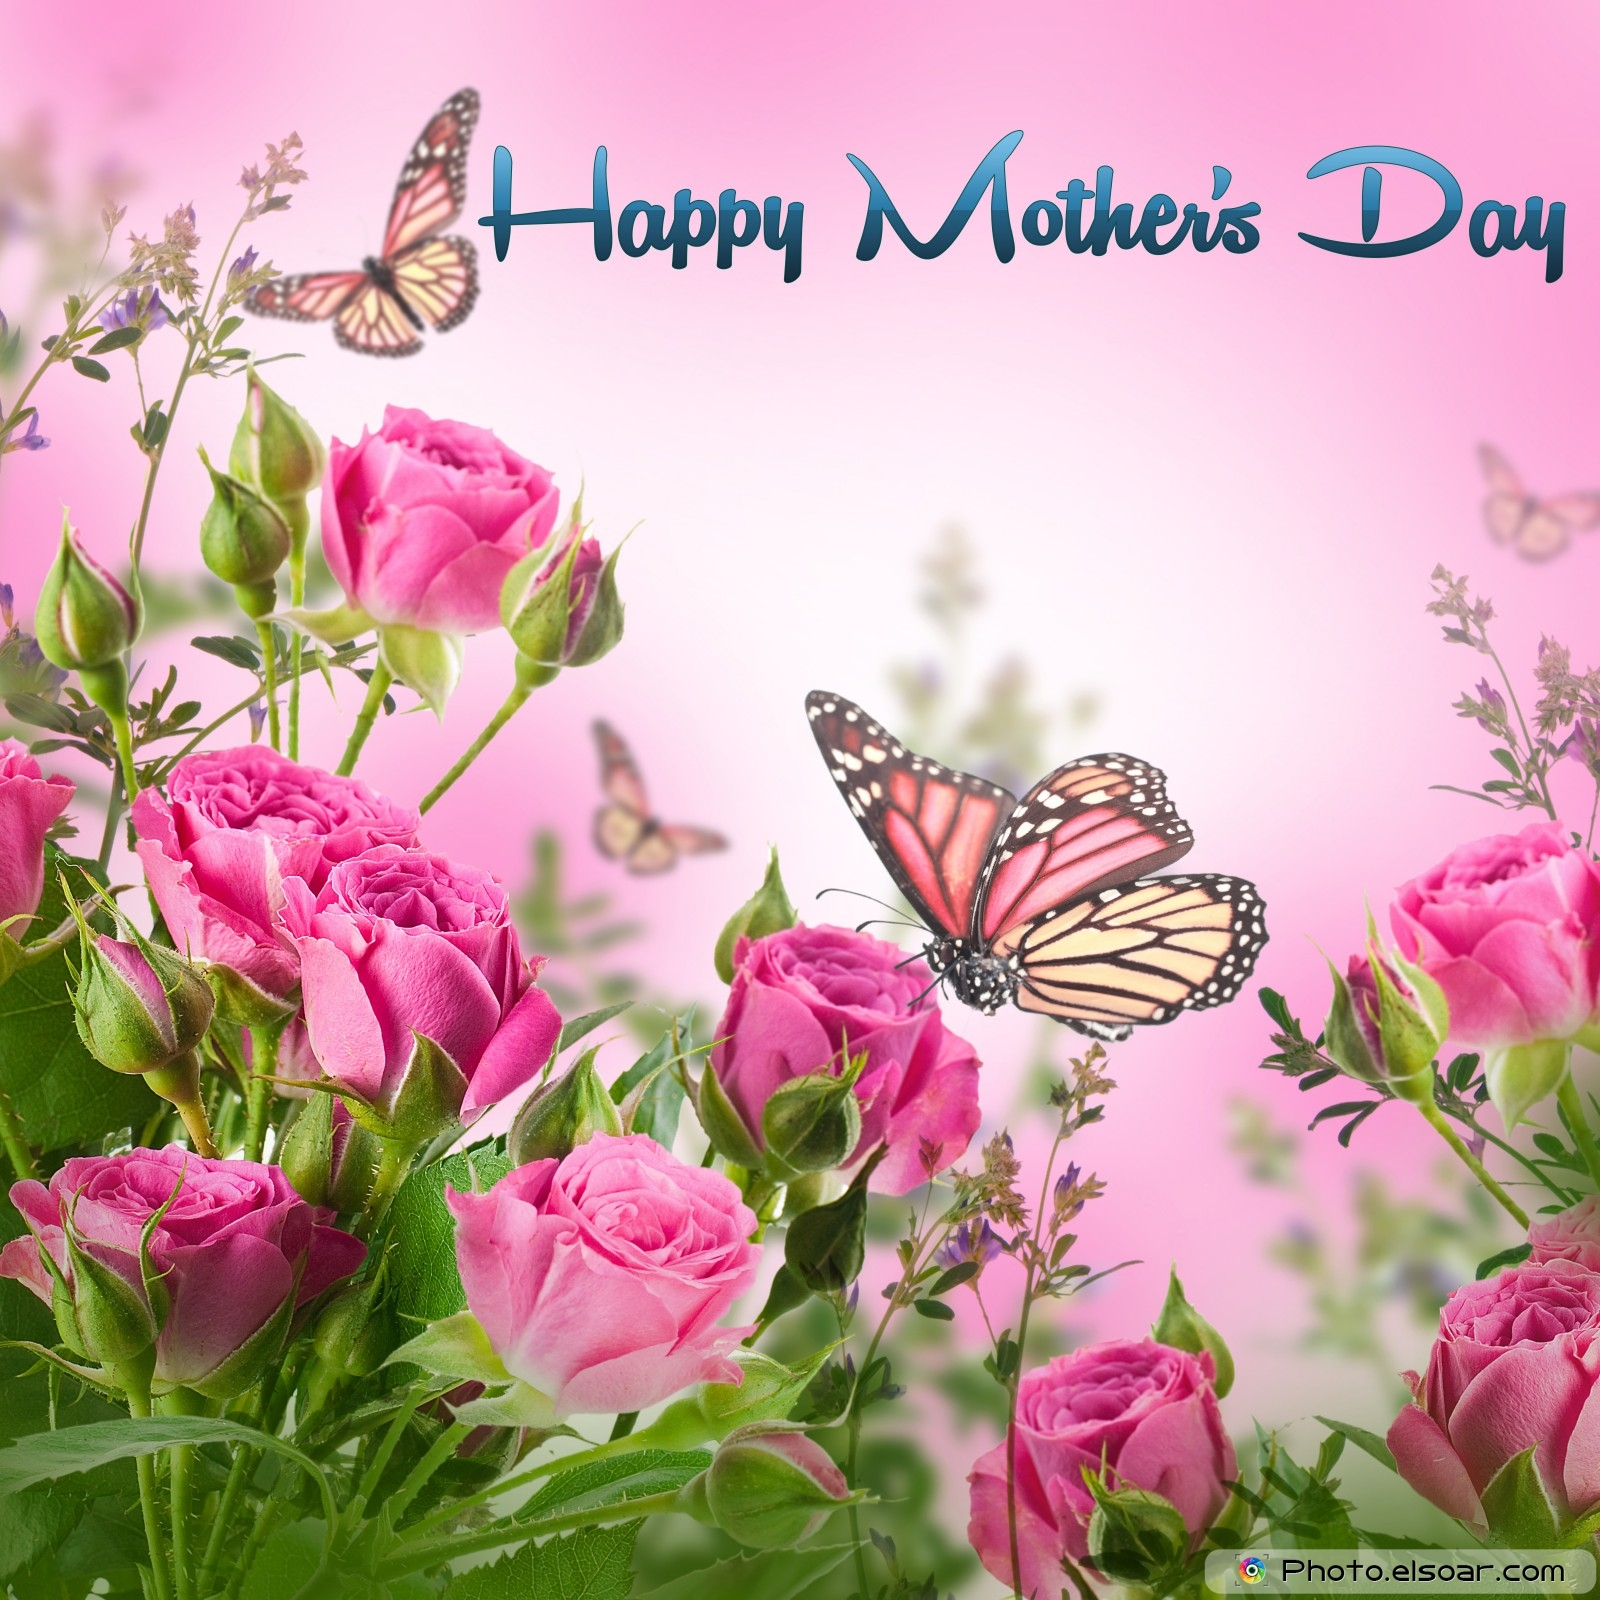 mothers day cards of pink flowers with butterflies  elsoar, Natural flower